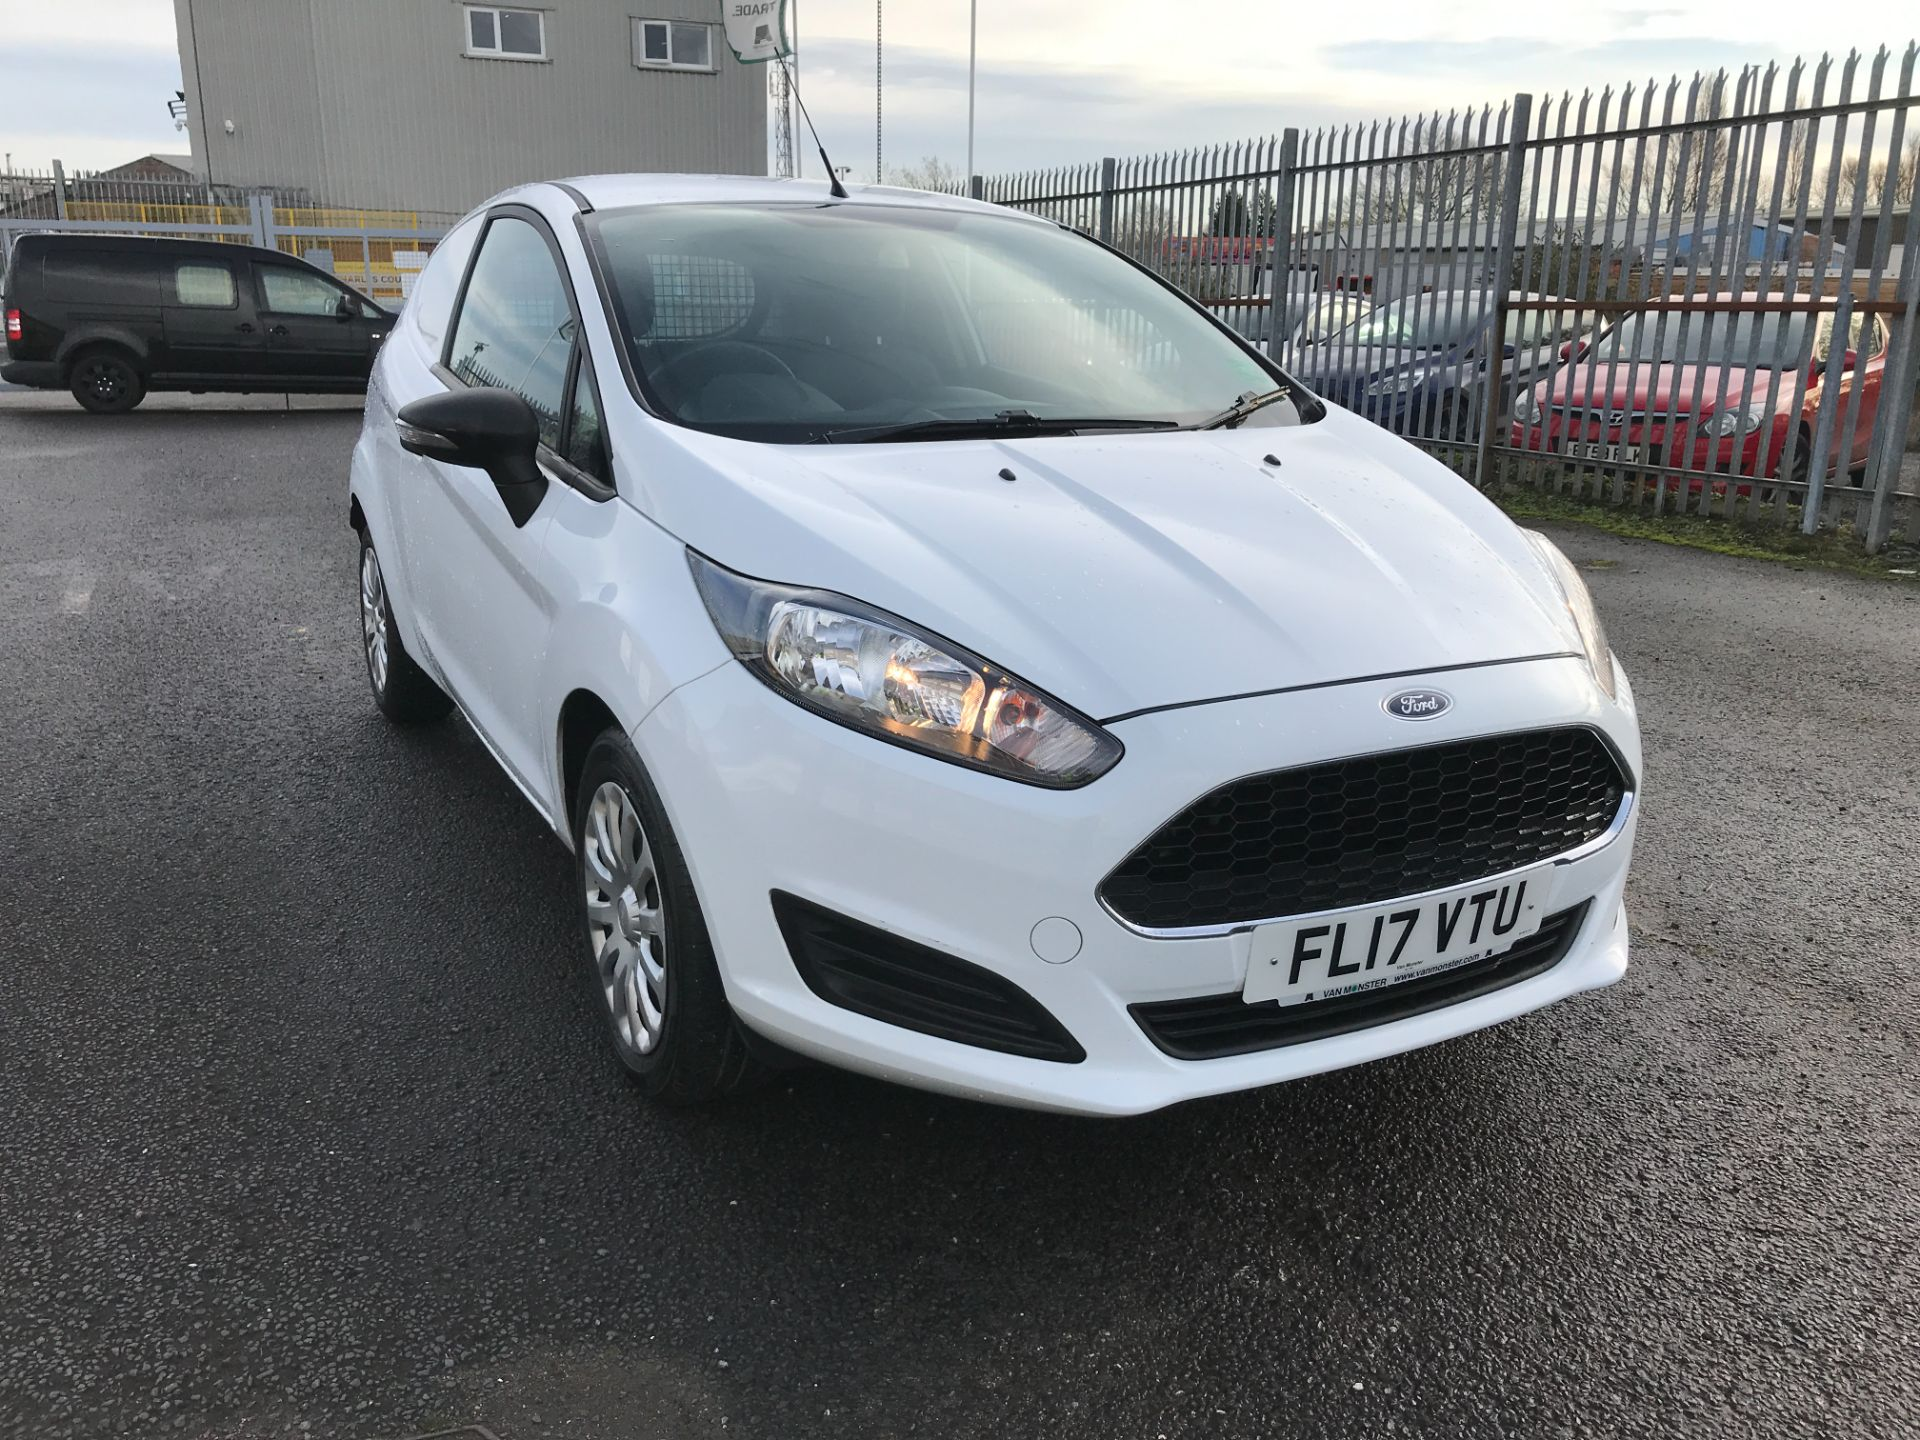 2017 Ford Fiesta 1.5TDCI 75PS EURO 6 AIR CON (FL17VTU)